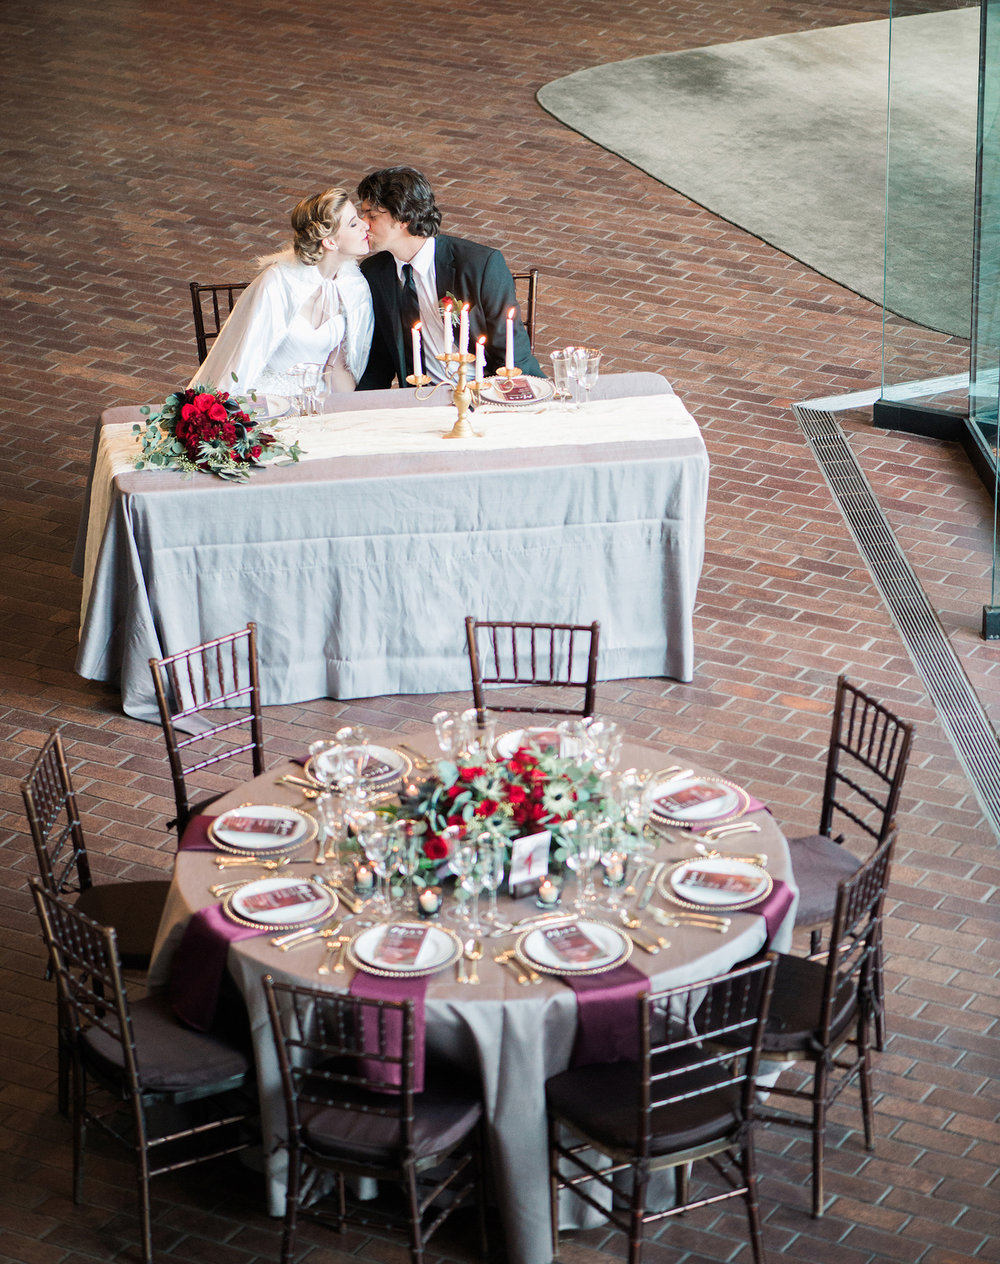 Luxurious and romantic vintage wedding inspiration in an urban venue — photo by Marianne Blackham Photography — as seen on www.BrendasWeddingBlog.com